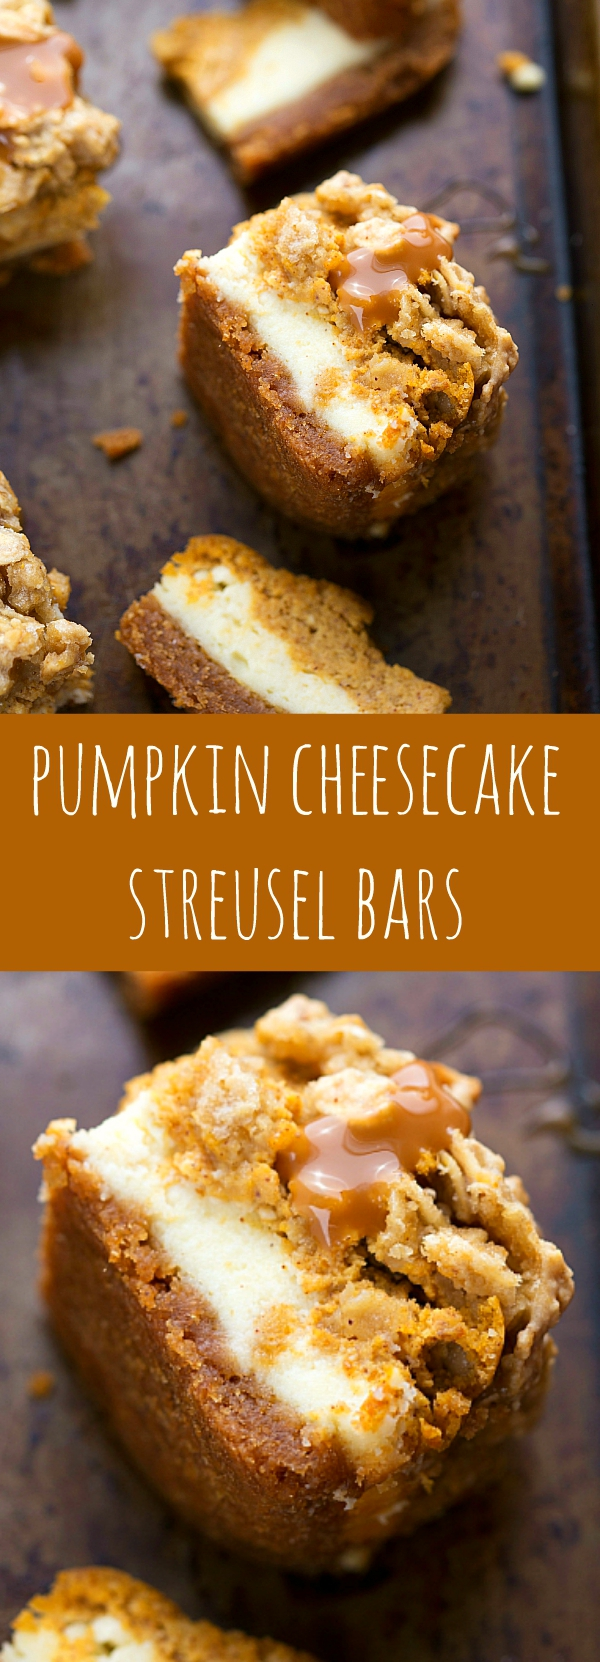 With two layers of cheesecake on a delicious cinnamon graham cracker crust topped with an easy streusel....you'll want to keep this recipe handy! Pumpkin Caramel Cheesecake Bars with Streusel Topping - Fall and Winter Dessert Recipe | Chelsea's Messy Apron #falldesserts #winterdesserts #christmasdesserts #thanksgivingdesserts #partydesserts #holidaydesserts #cinnamondesserts #carameldesserts #pumpkindesserts